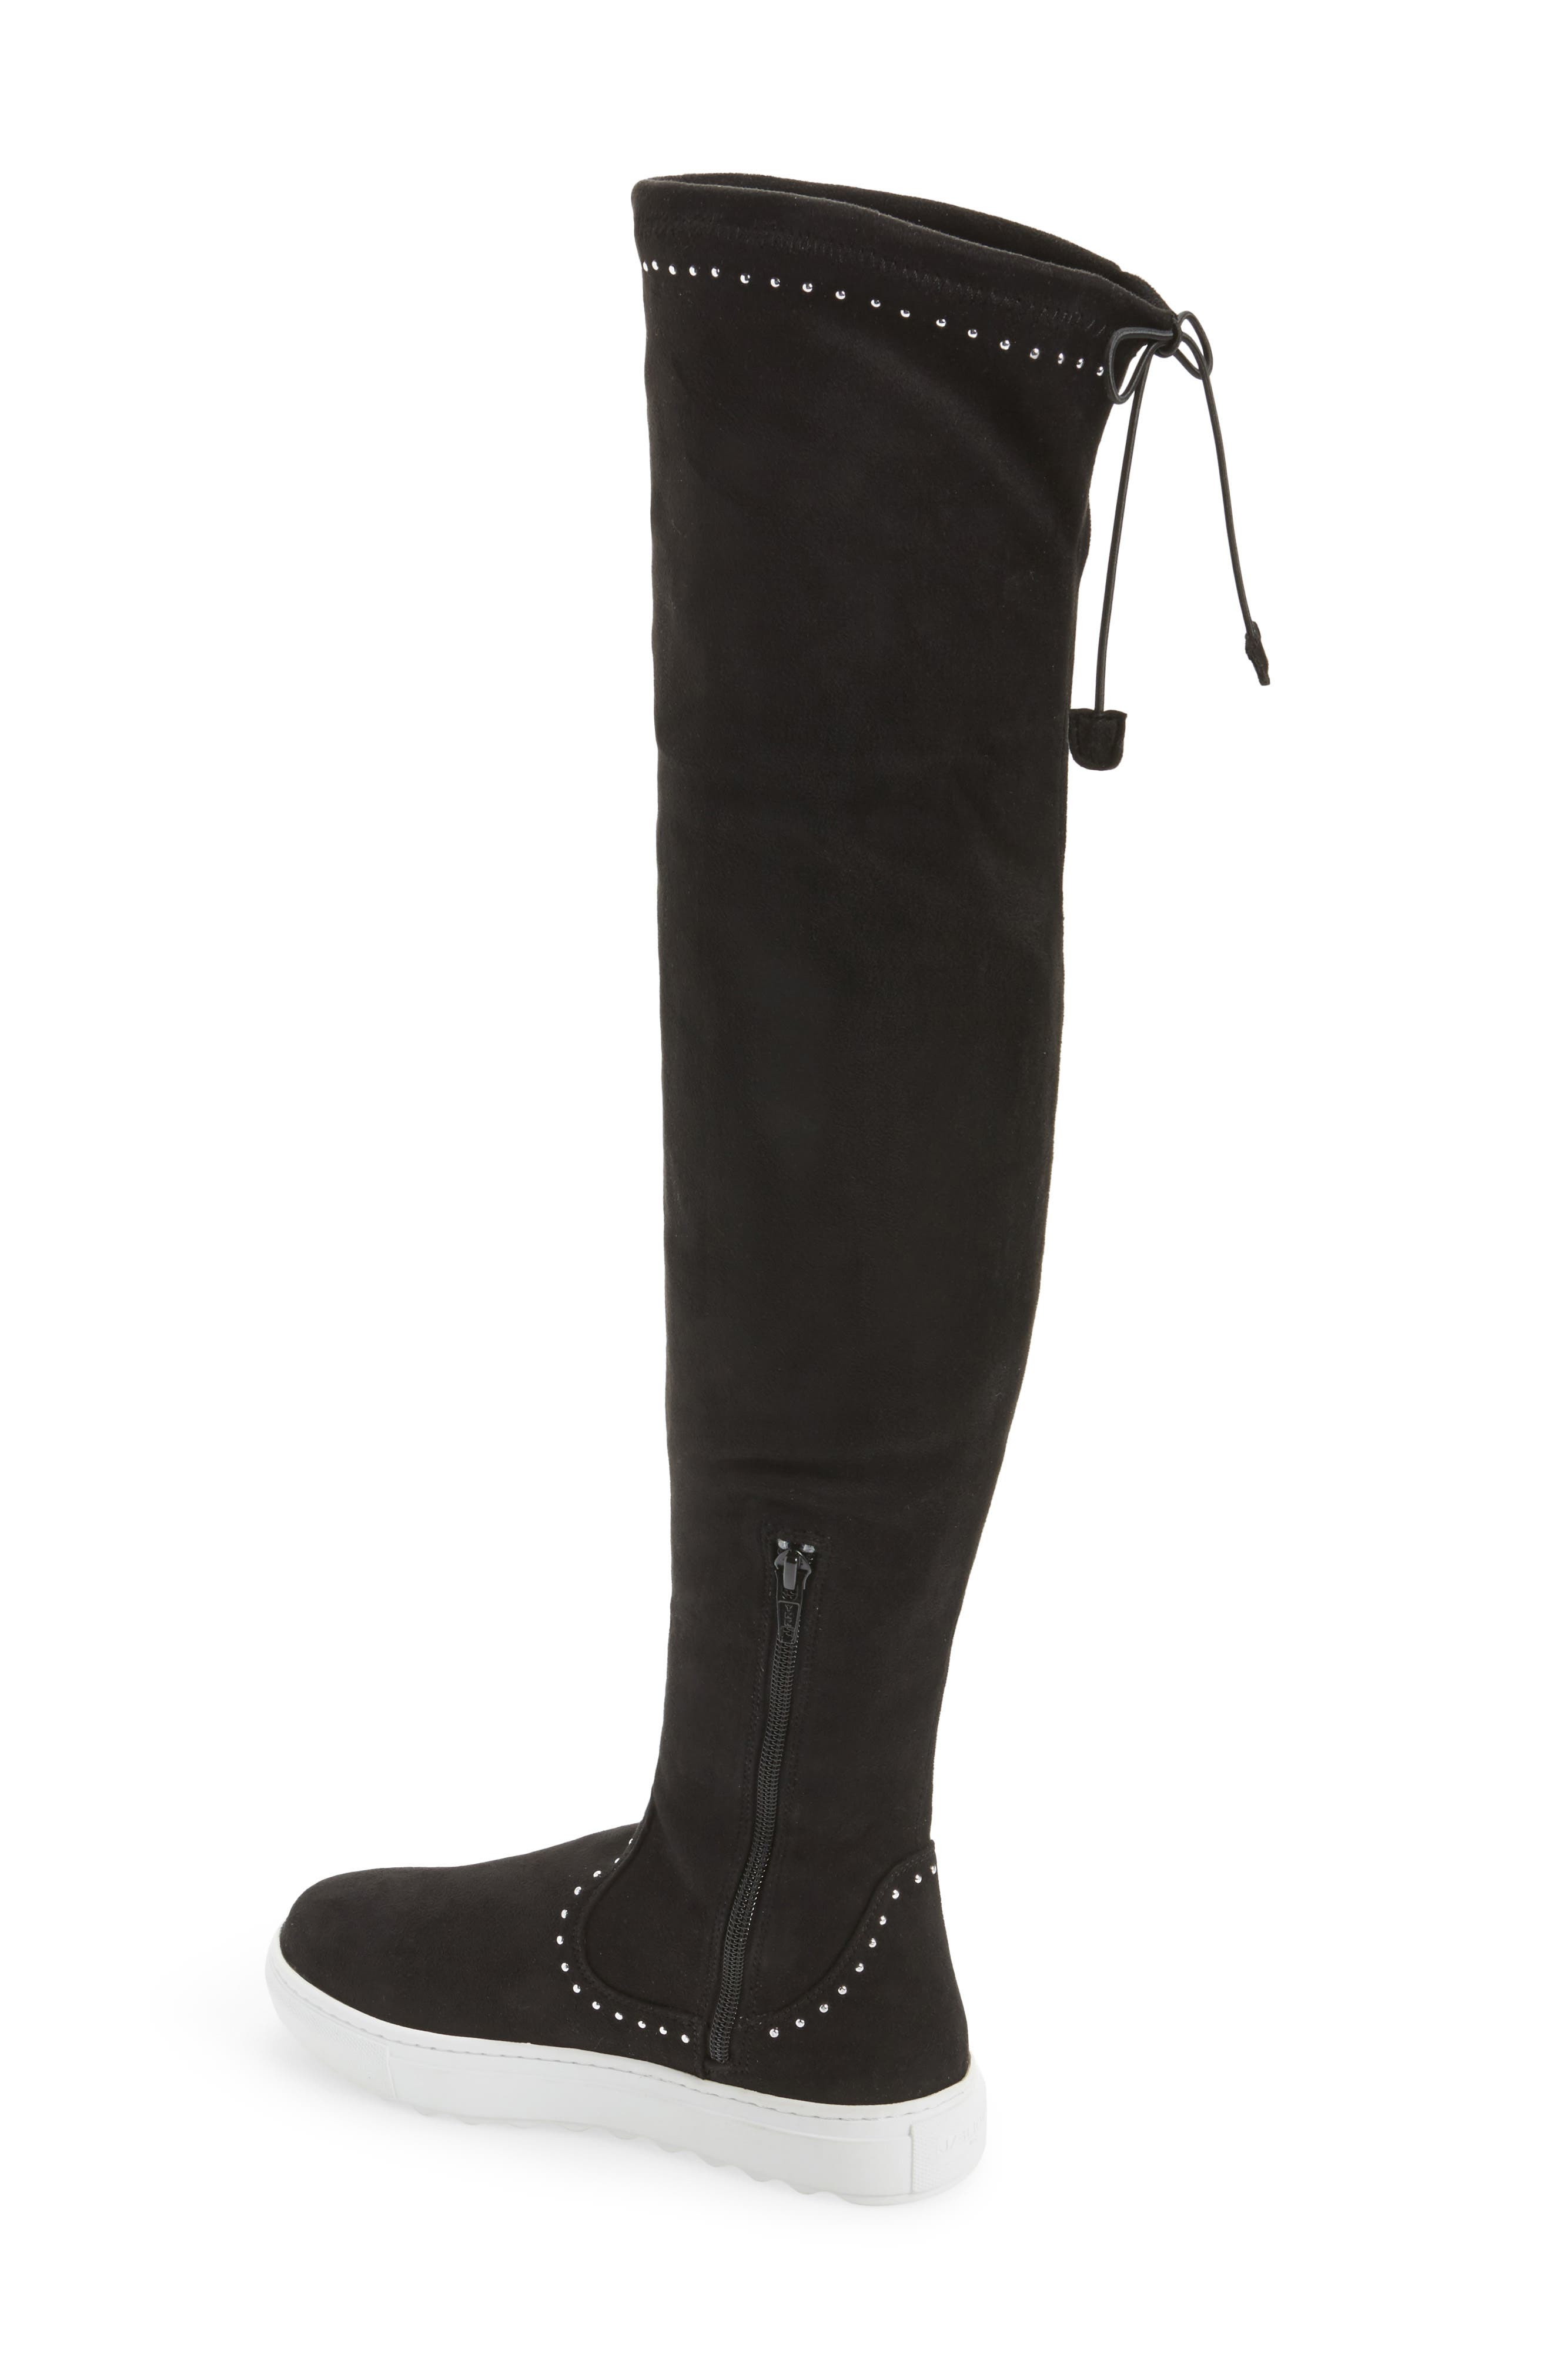 Plentee Over the Knee Boot,                             Alternate thumbnail 2, color,                             001